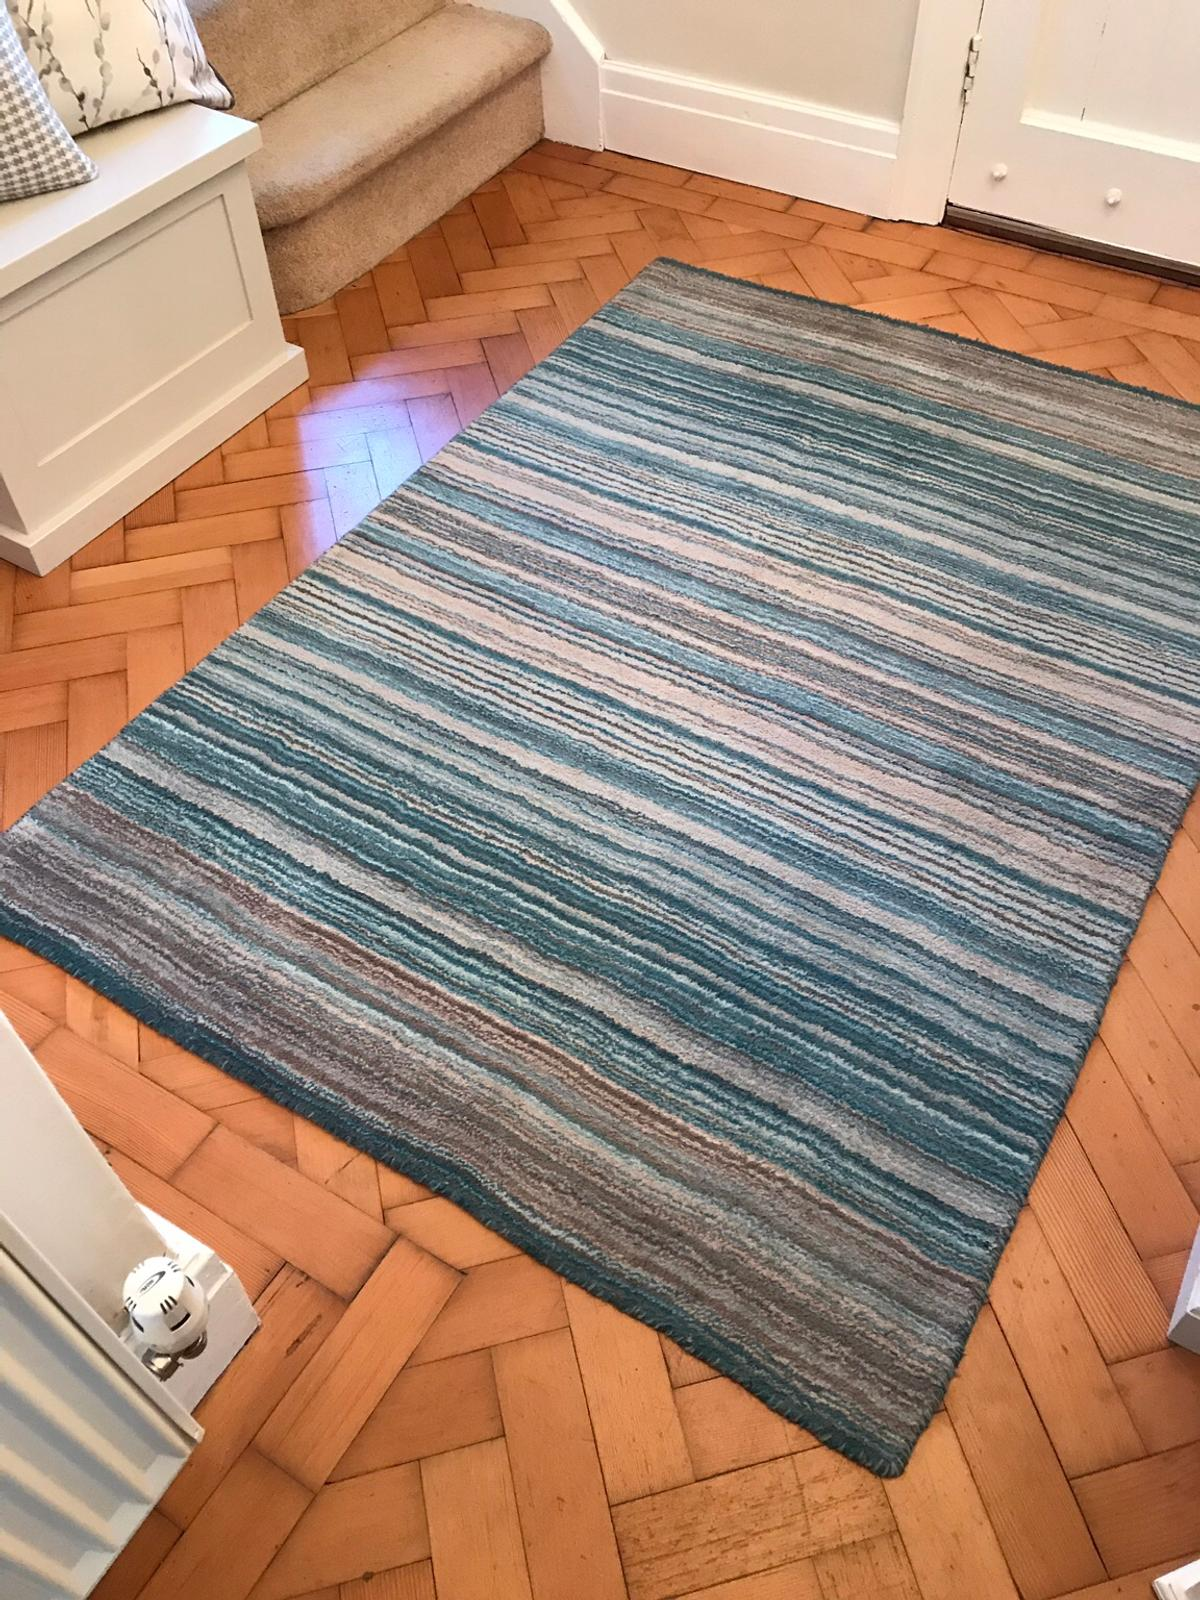 Next Rug in CH1 Chester for £20.00 for